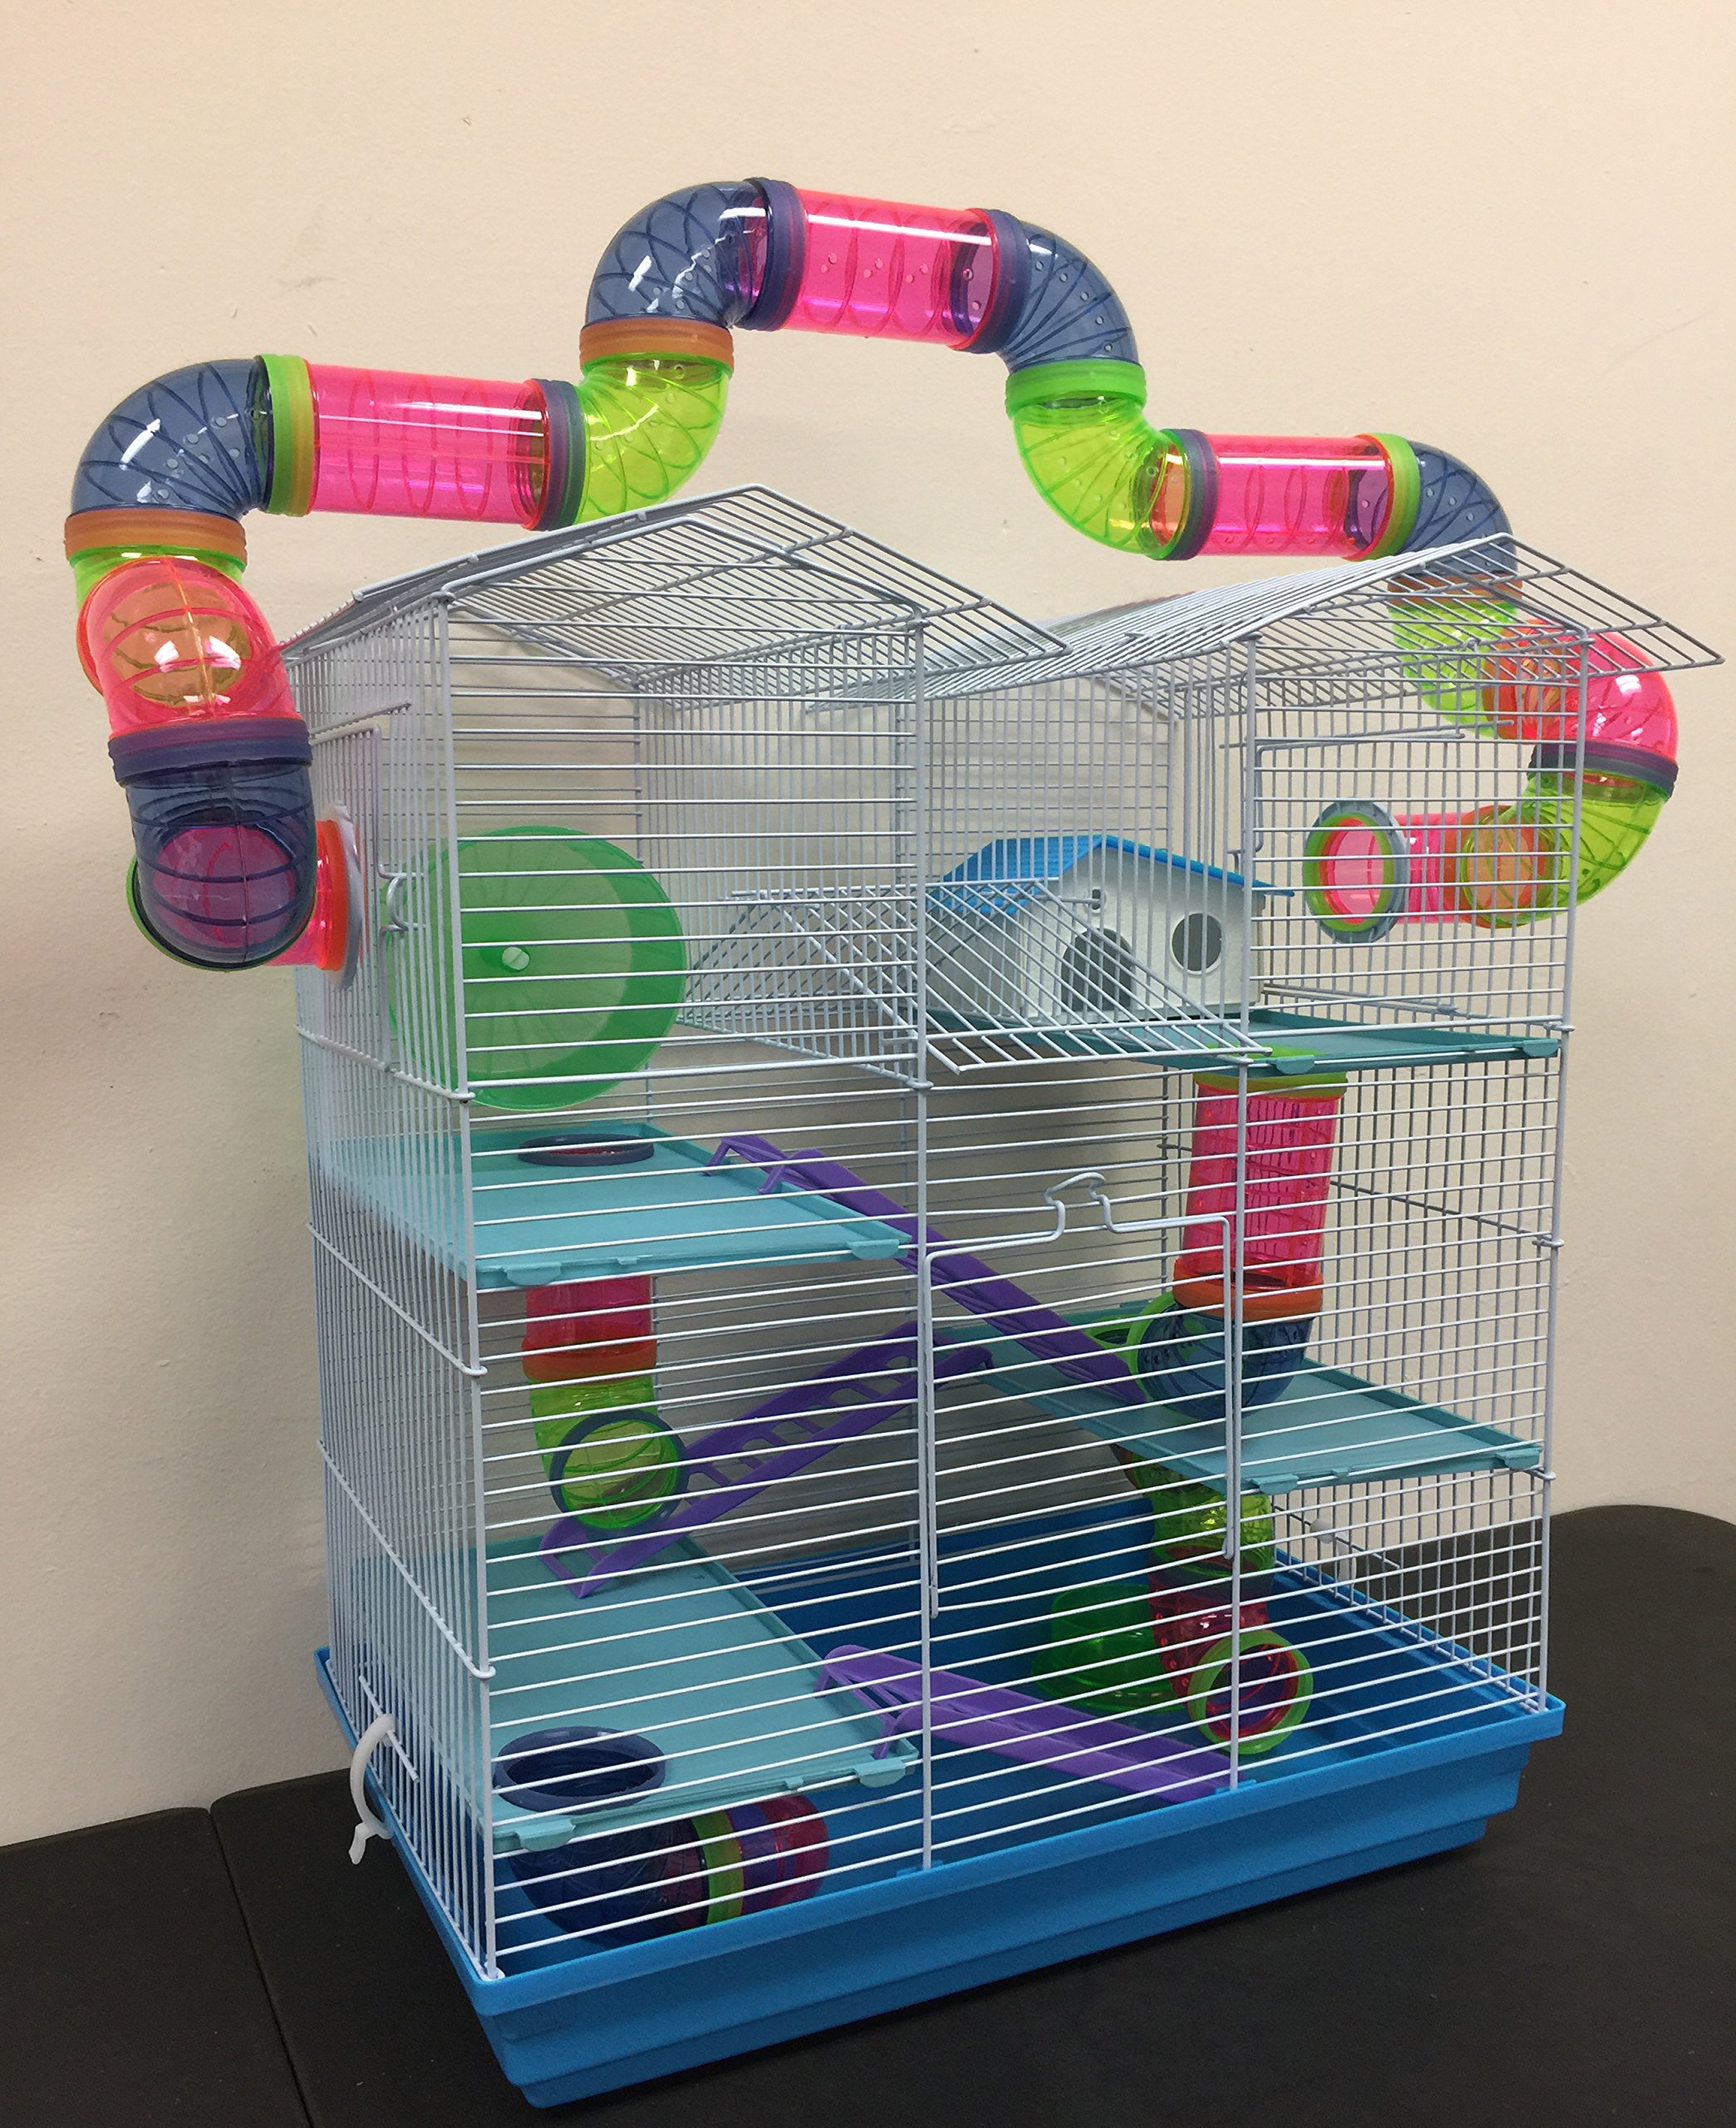 5 Level Large Cross Twin Tower Tube Tunnel Habitat Hamster Rodent Gerbil Mouse Mice Rat Cage (Blue)